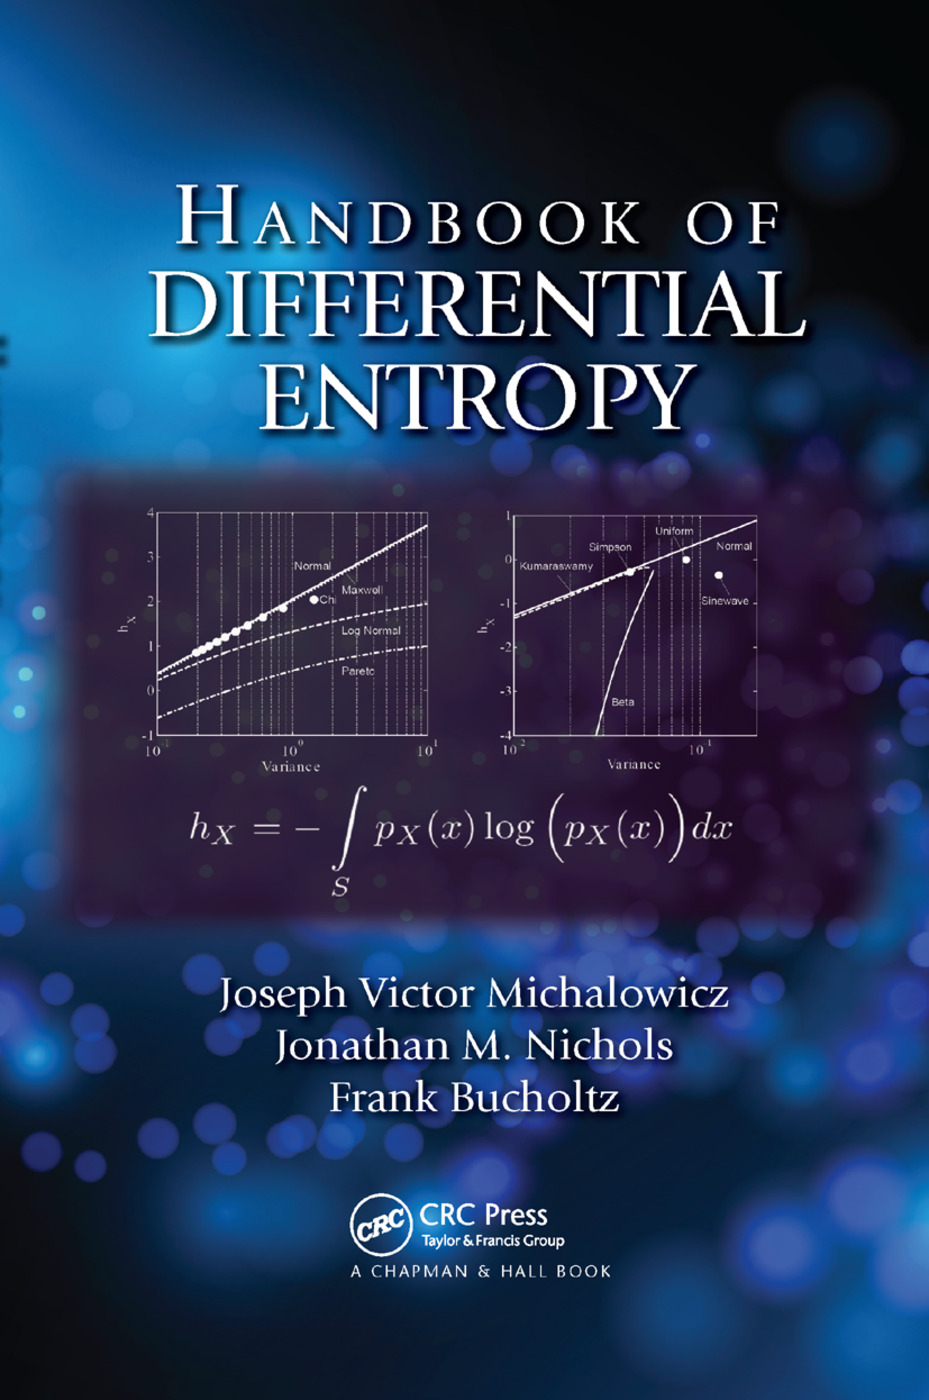 Handbook of Differential Entropy